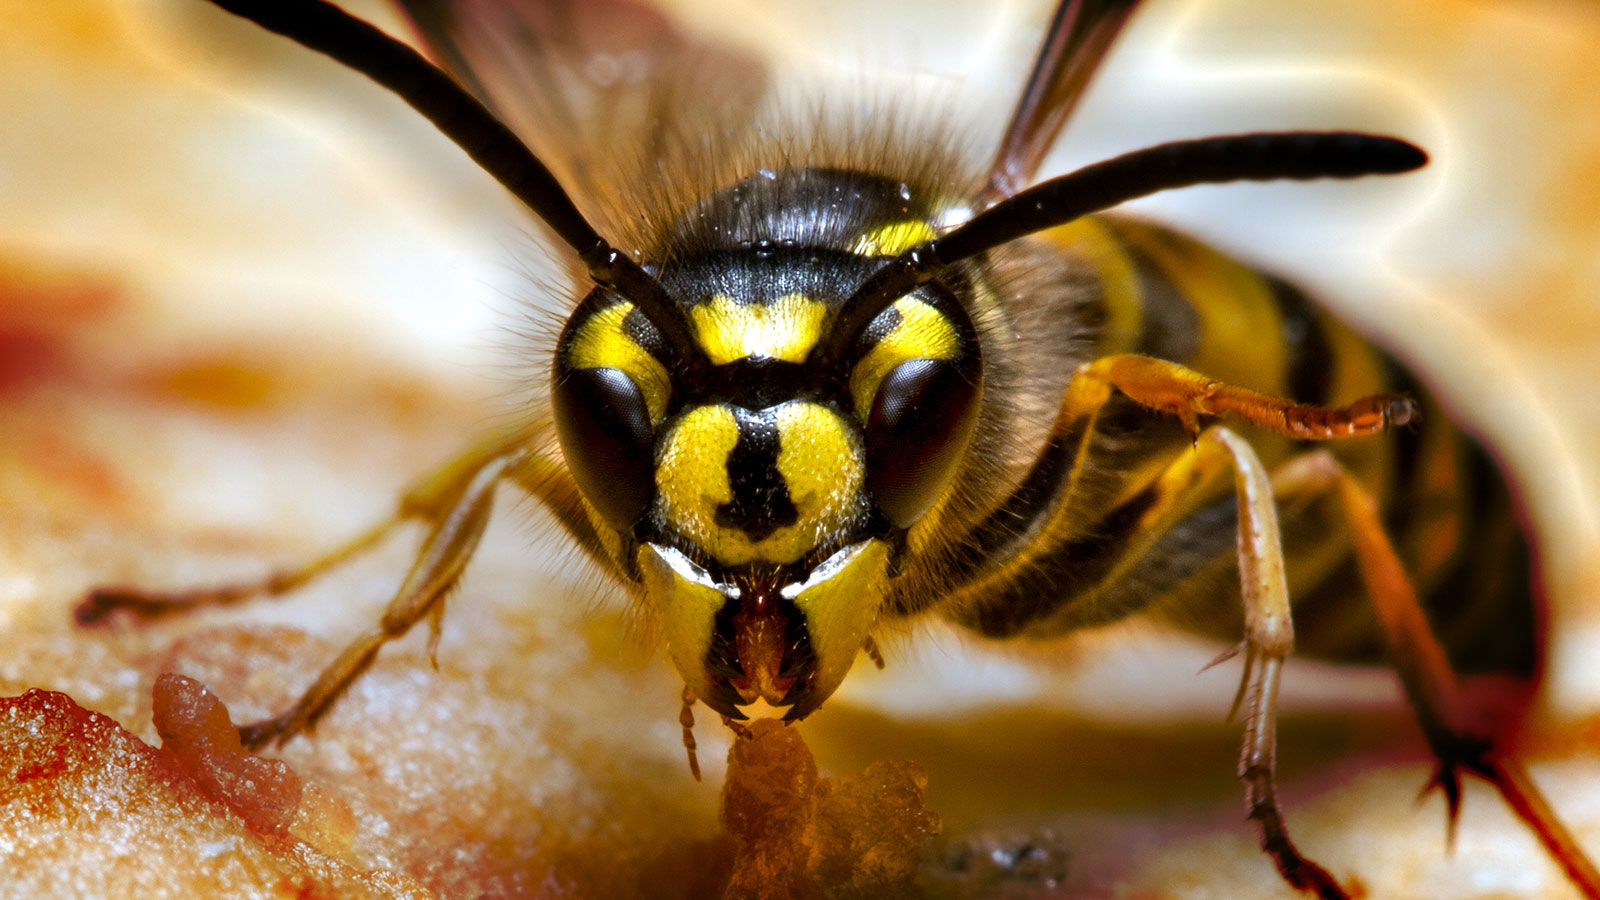 What's the Difference Between a Hornet and a Wasp? | HowStuffWorks